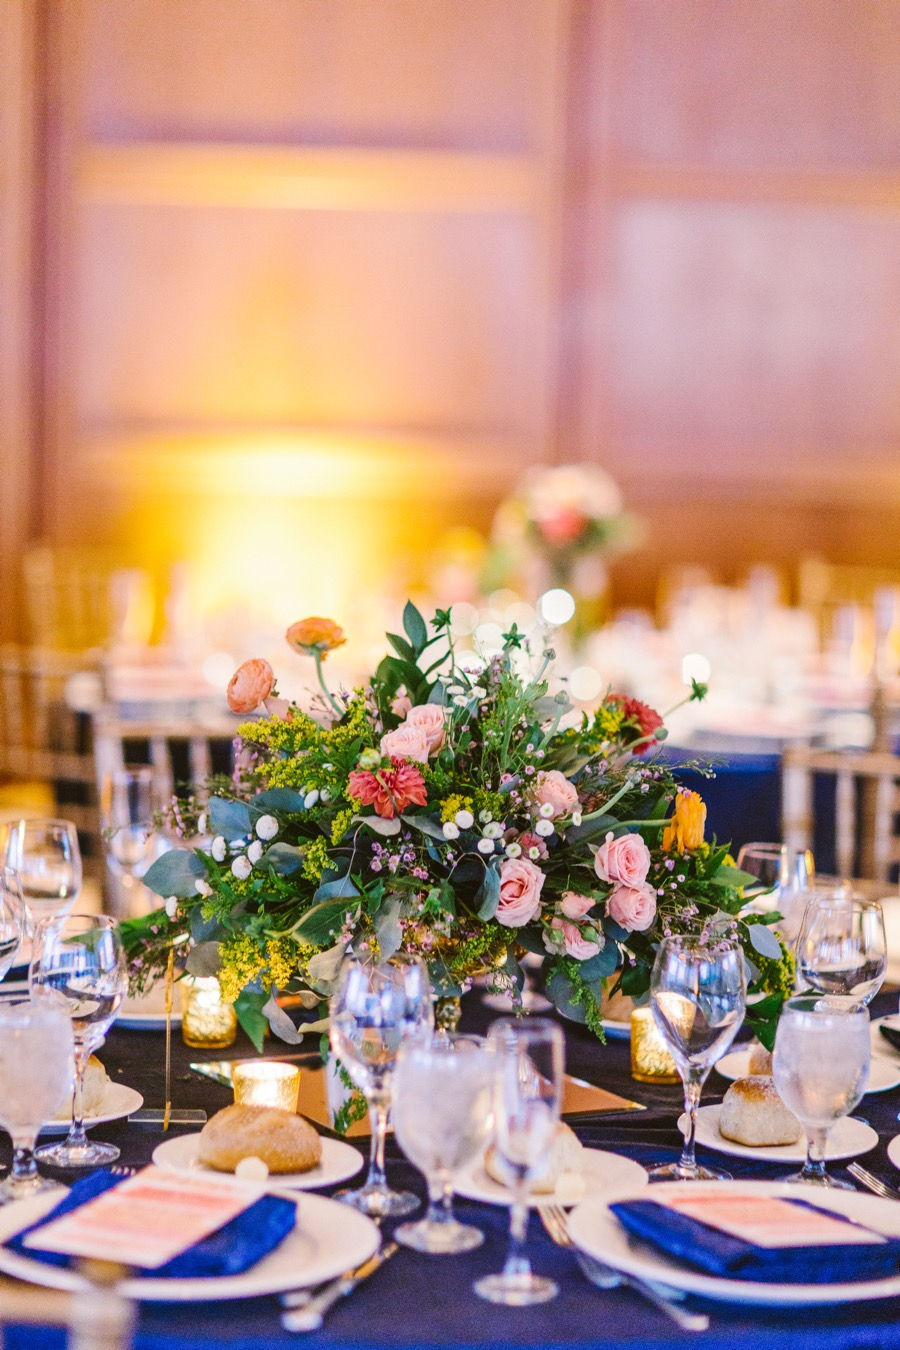 A Colorful Philadelphia City Wedding Filled With Ombr Decor